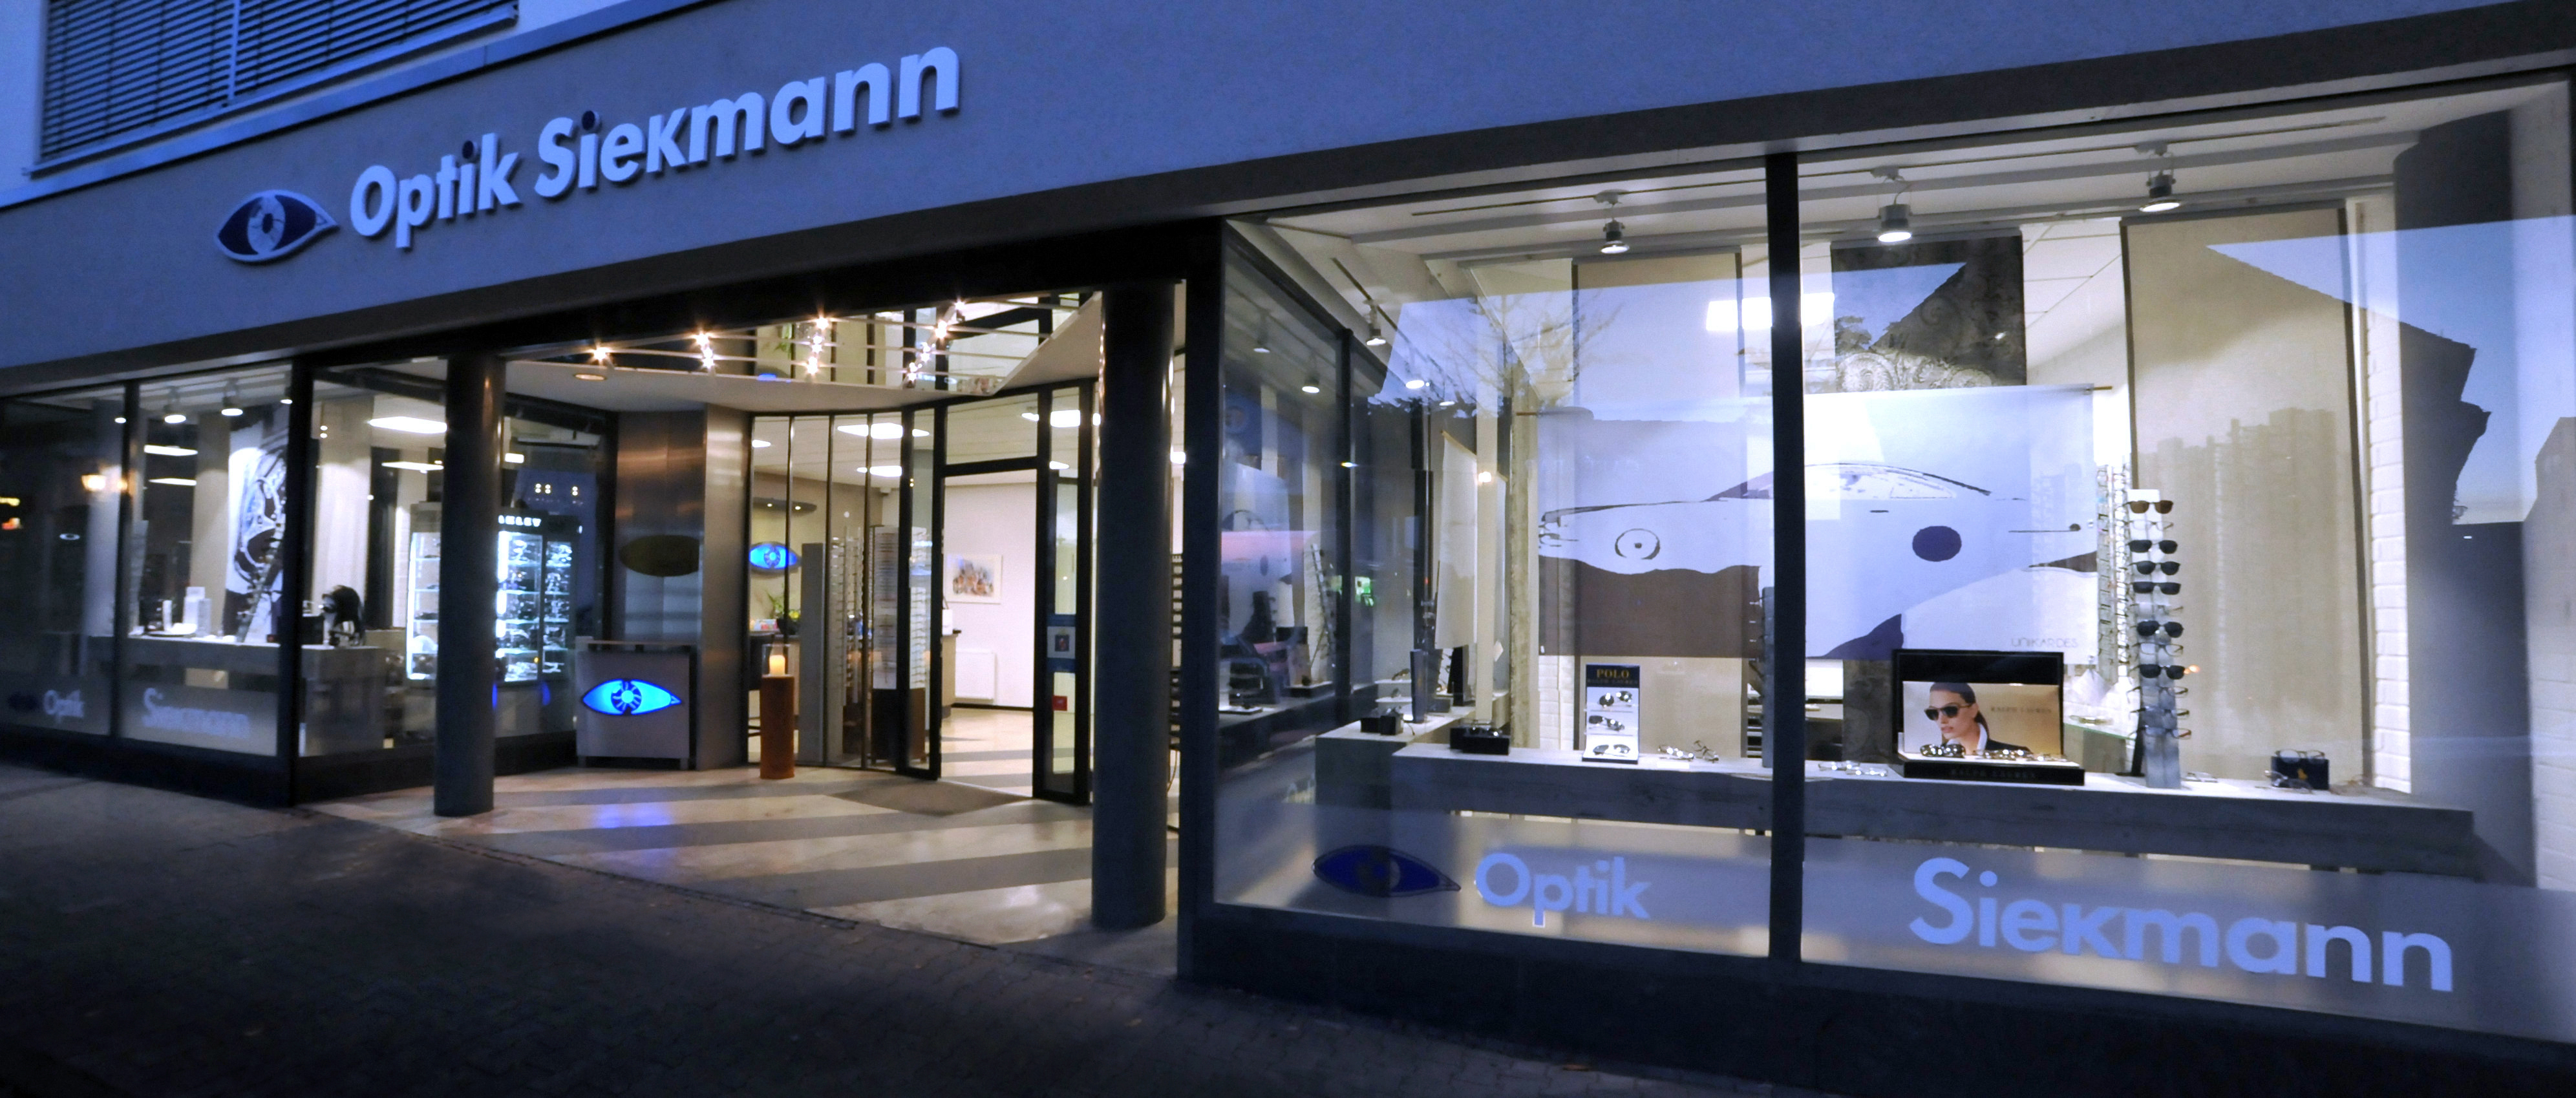 optik_siekmann_pan